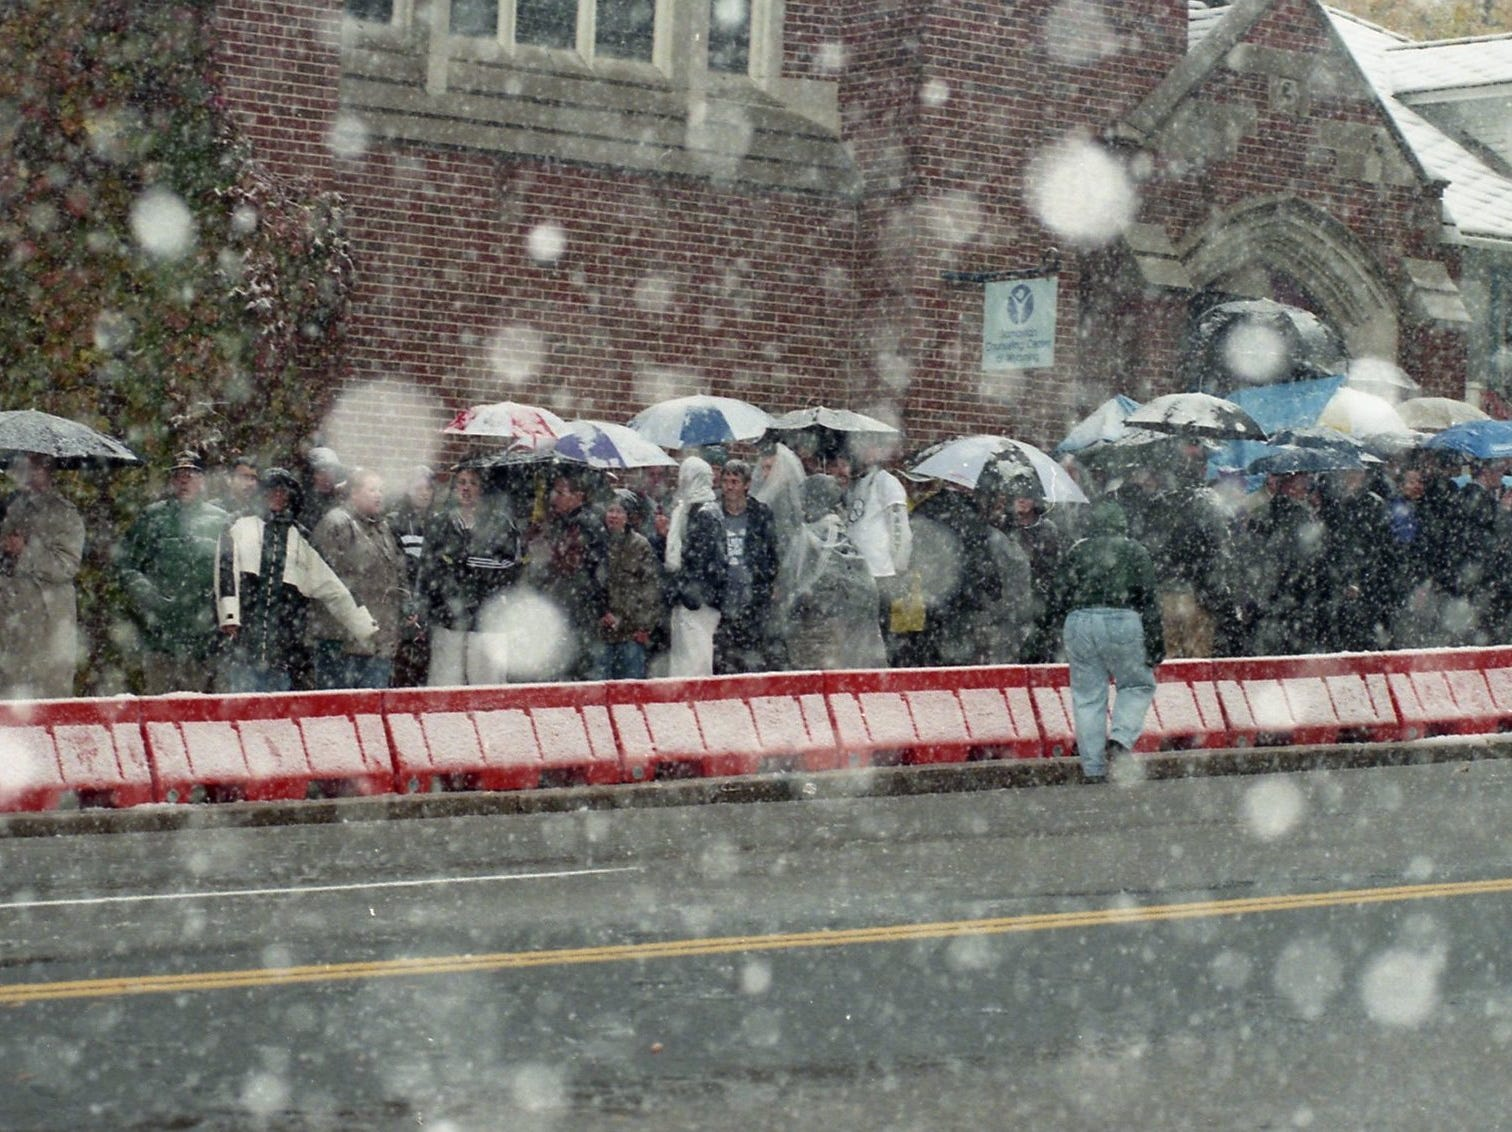 Funeral-goers stand outside in the snow (rain?) watiing to go into the church for the funeral service.